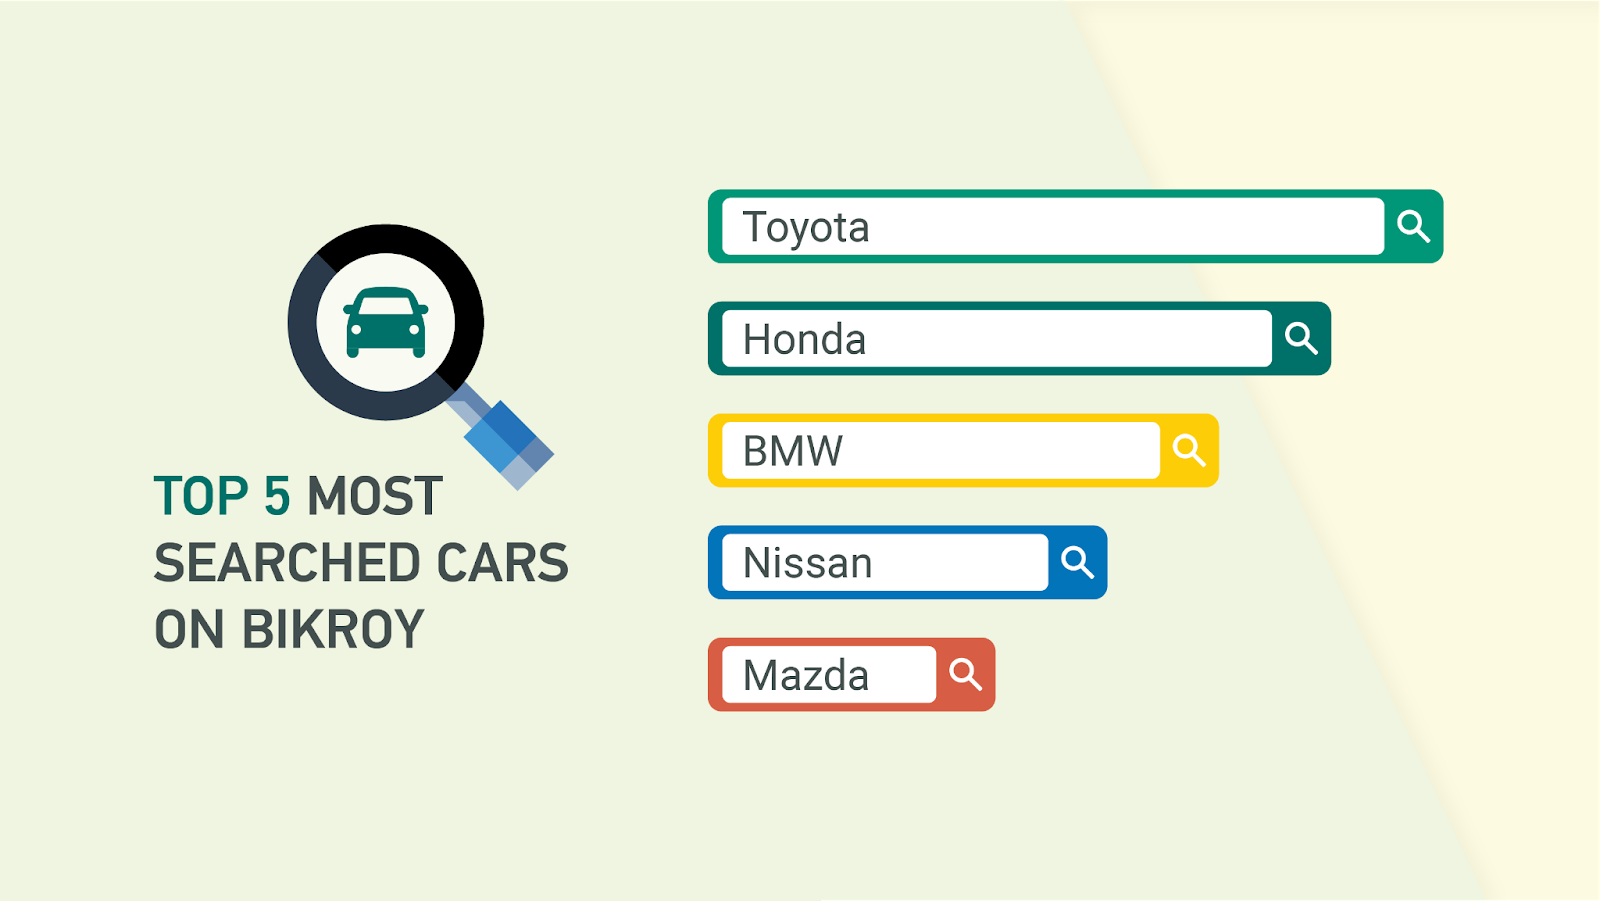 Most searched cars on Bikroy